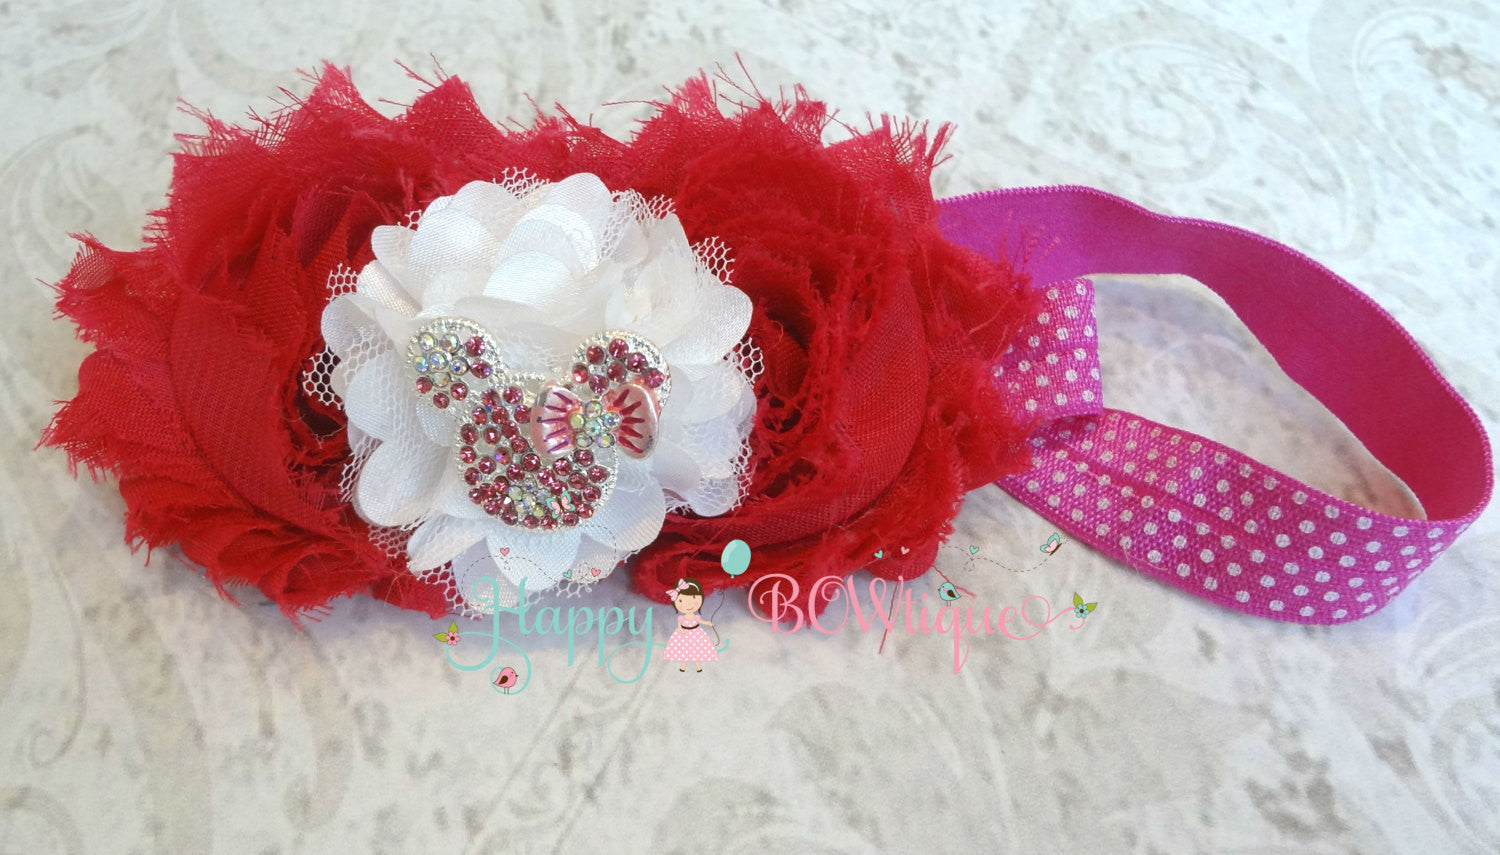 Hot Pink Girl's Mouse Headband - Happy BOWtique - children's clothing, Baby Girl clothing